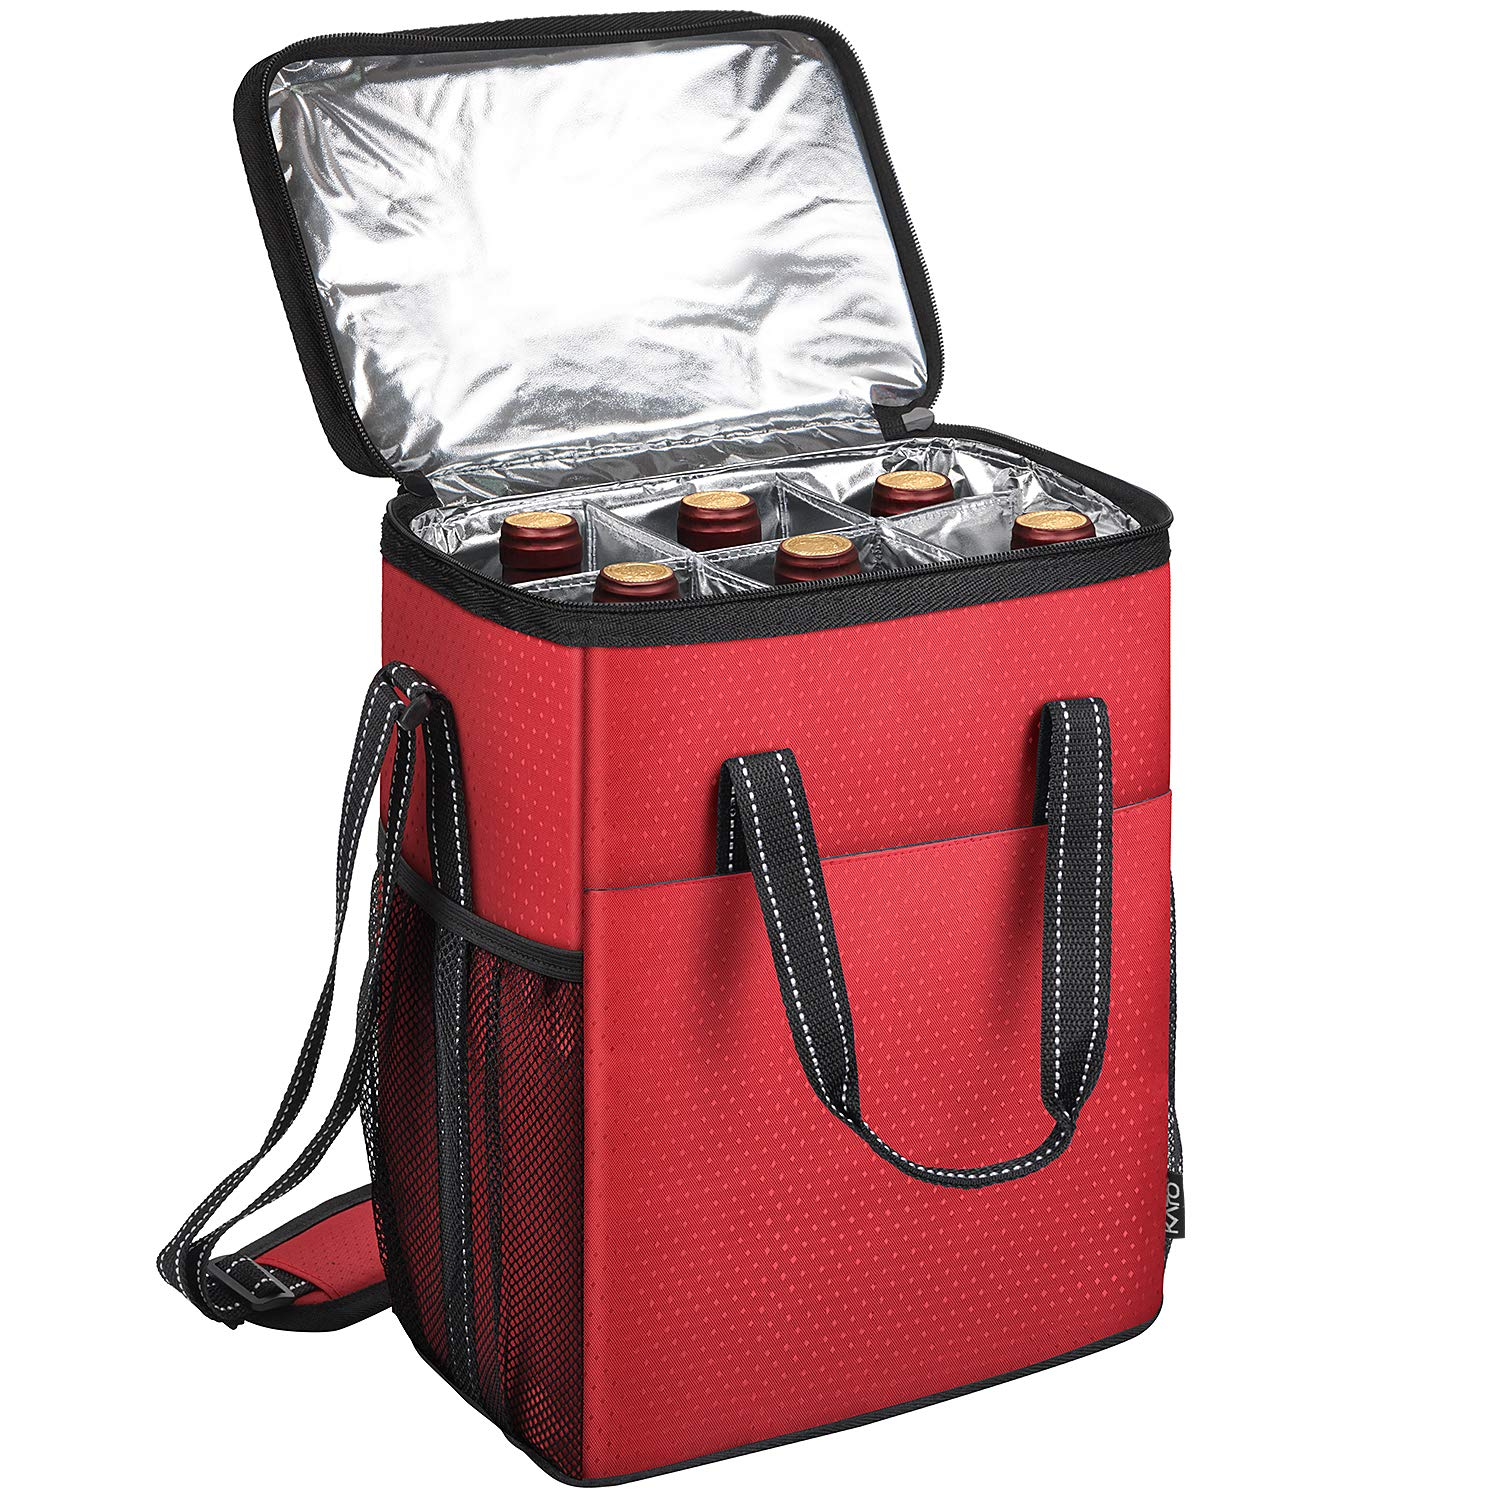 Kato 6 Bottle Wine Carrier - Insulated & Padded Wine Carrying Cooler Tote Bag for Travel, Camping and Picnic, Ideal Wine Lover Gift, Star Dot Pattern, Black